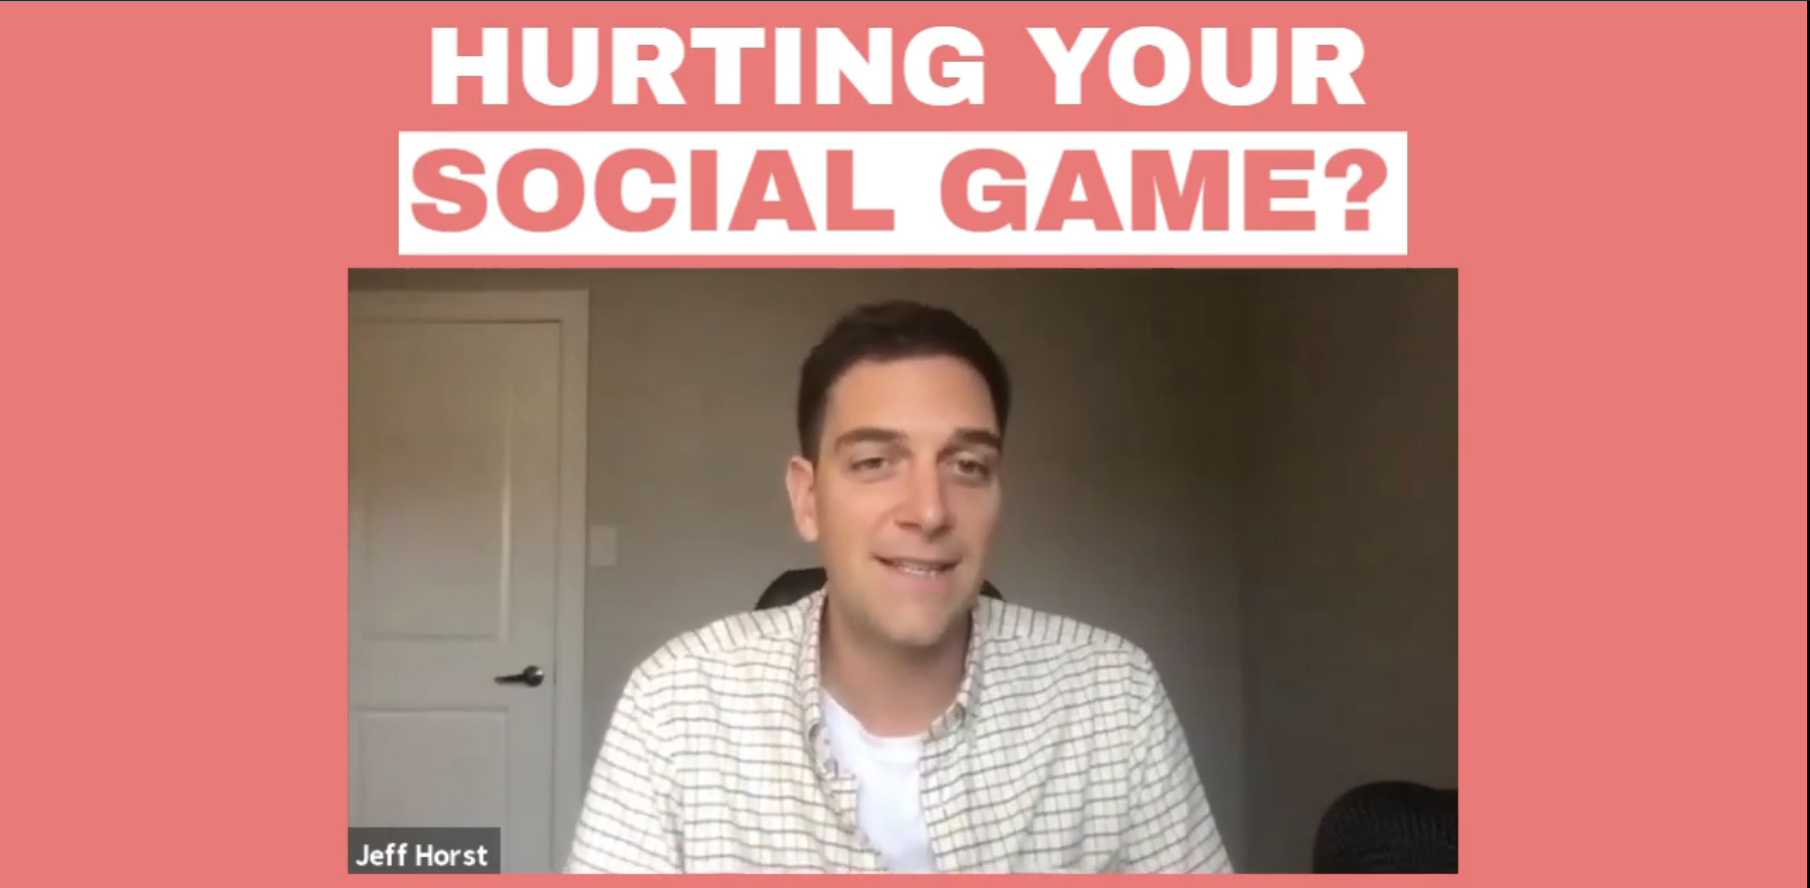 Hurting Your Social Game